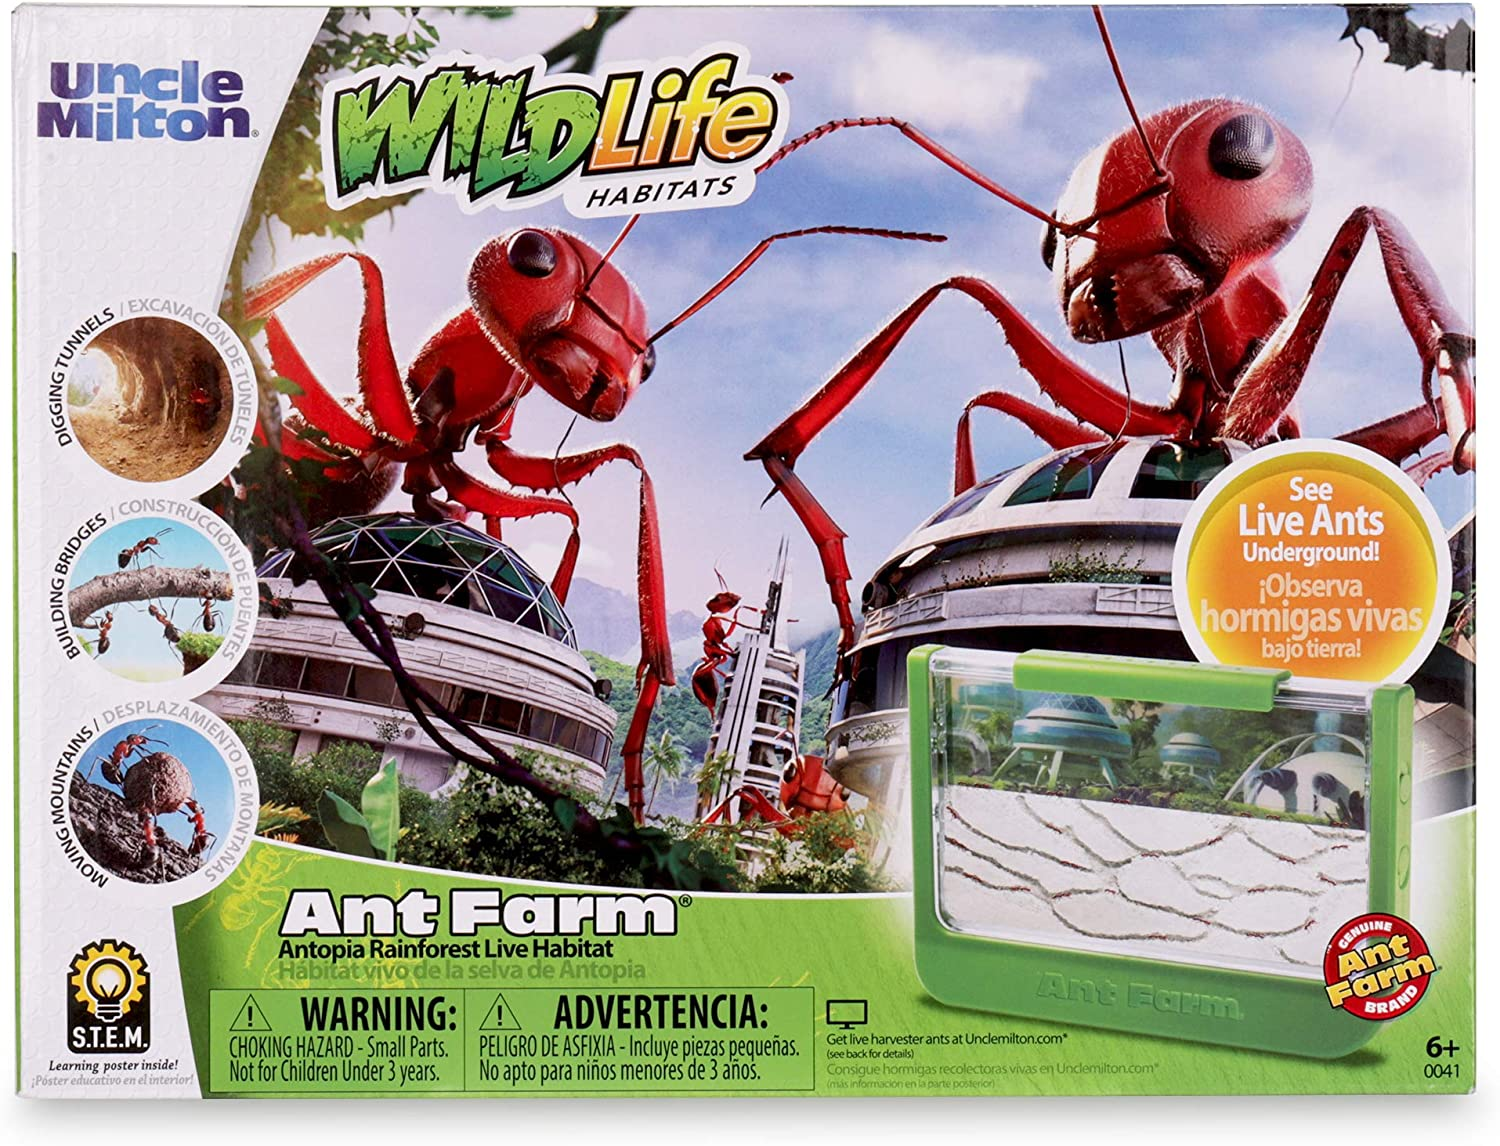 25g Ant Farm Food Freeze-dried Mealworm Ant Nest Anthill Nutritious Protein